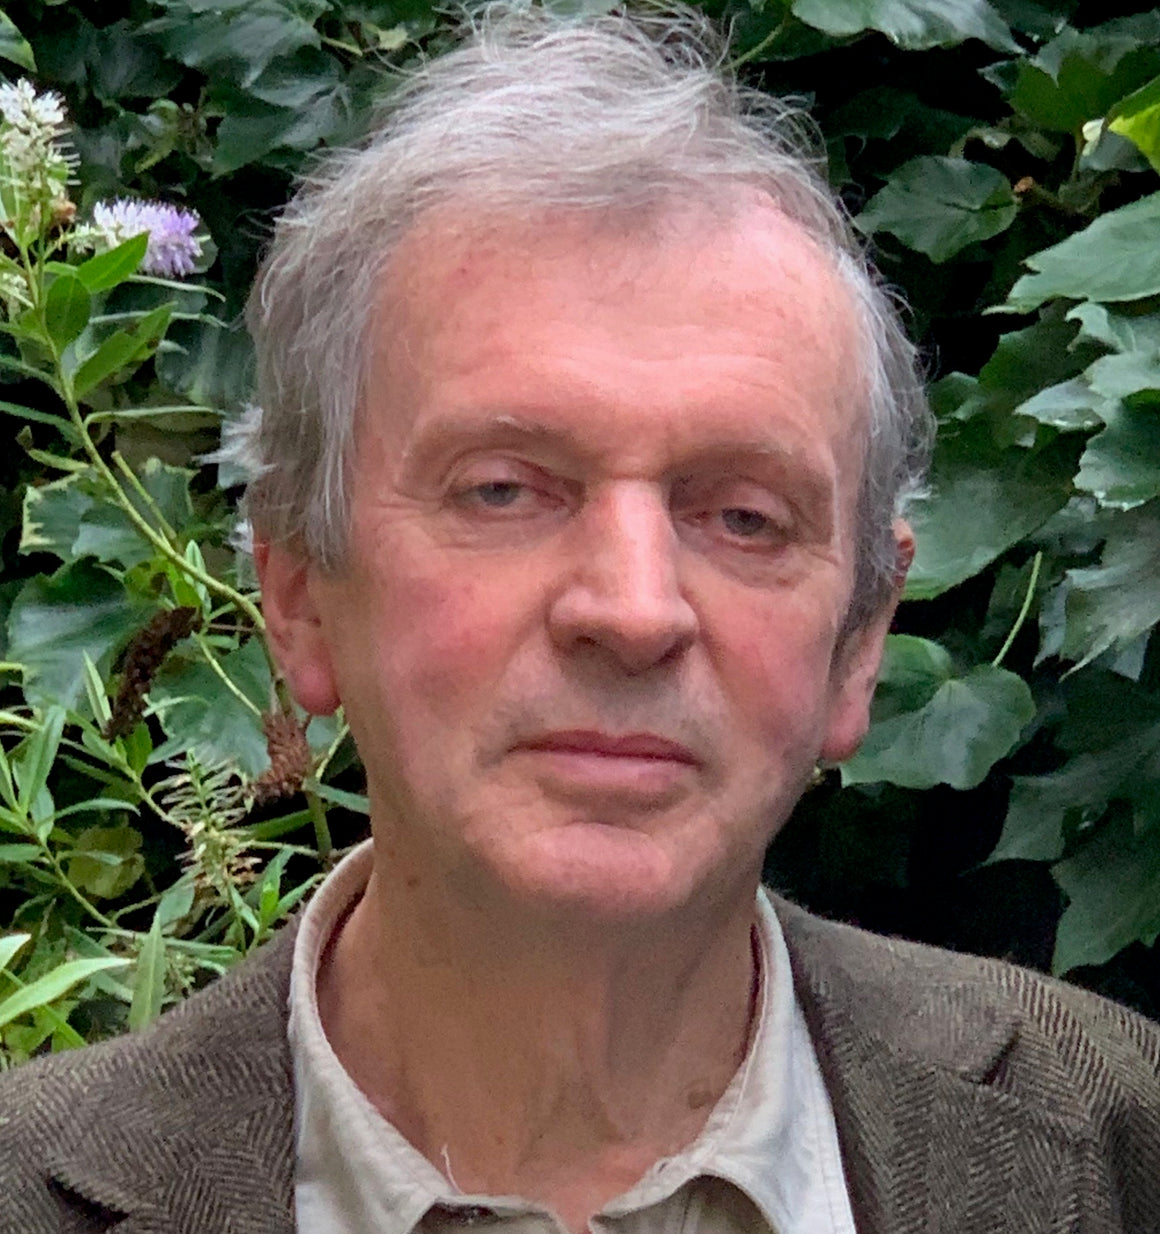 July 18, 2020 - Saturday 9:30-3:30pm - Resonant Fields, Voices and Family Constellations Online Workshop - with Rupert Sheldrake & Jill Purce